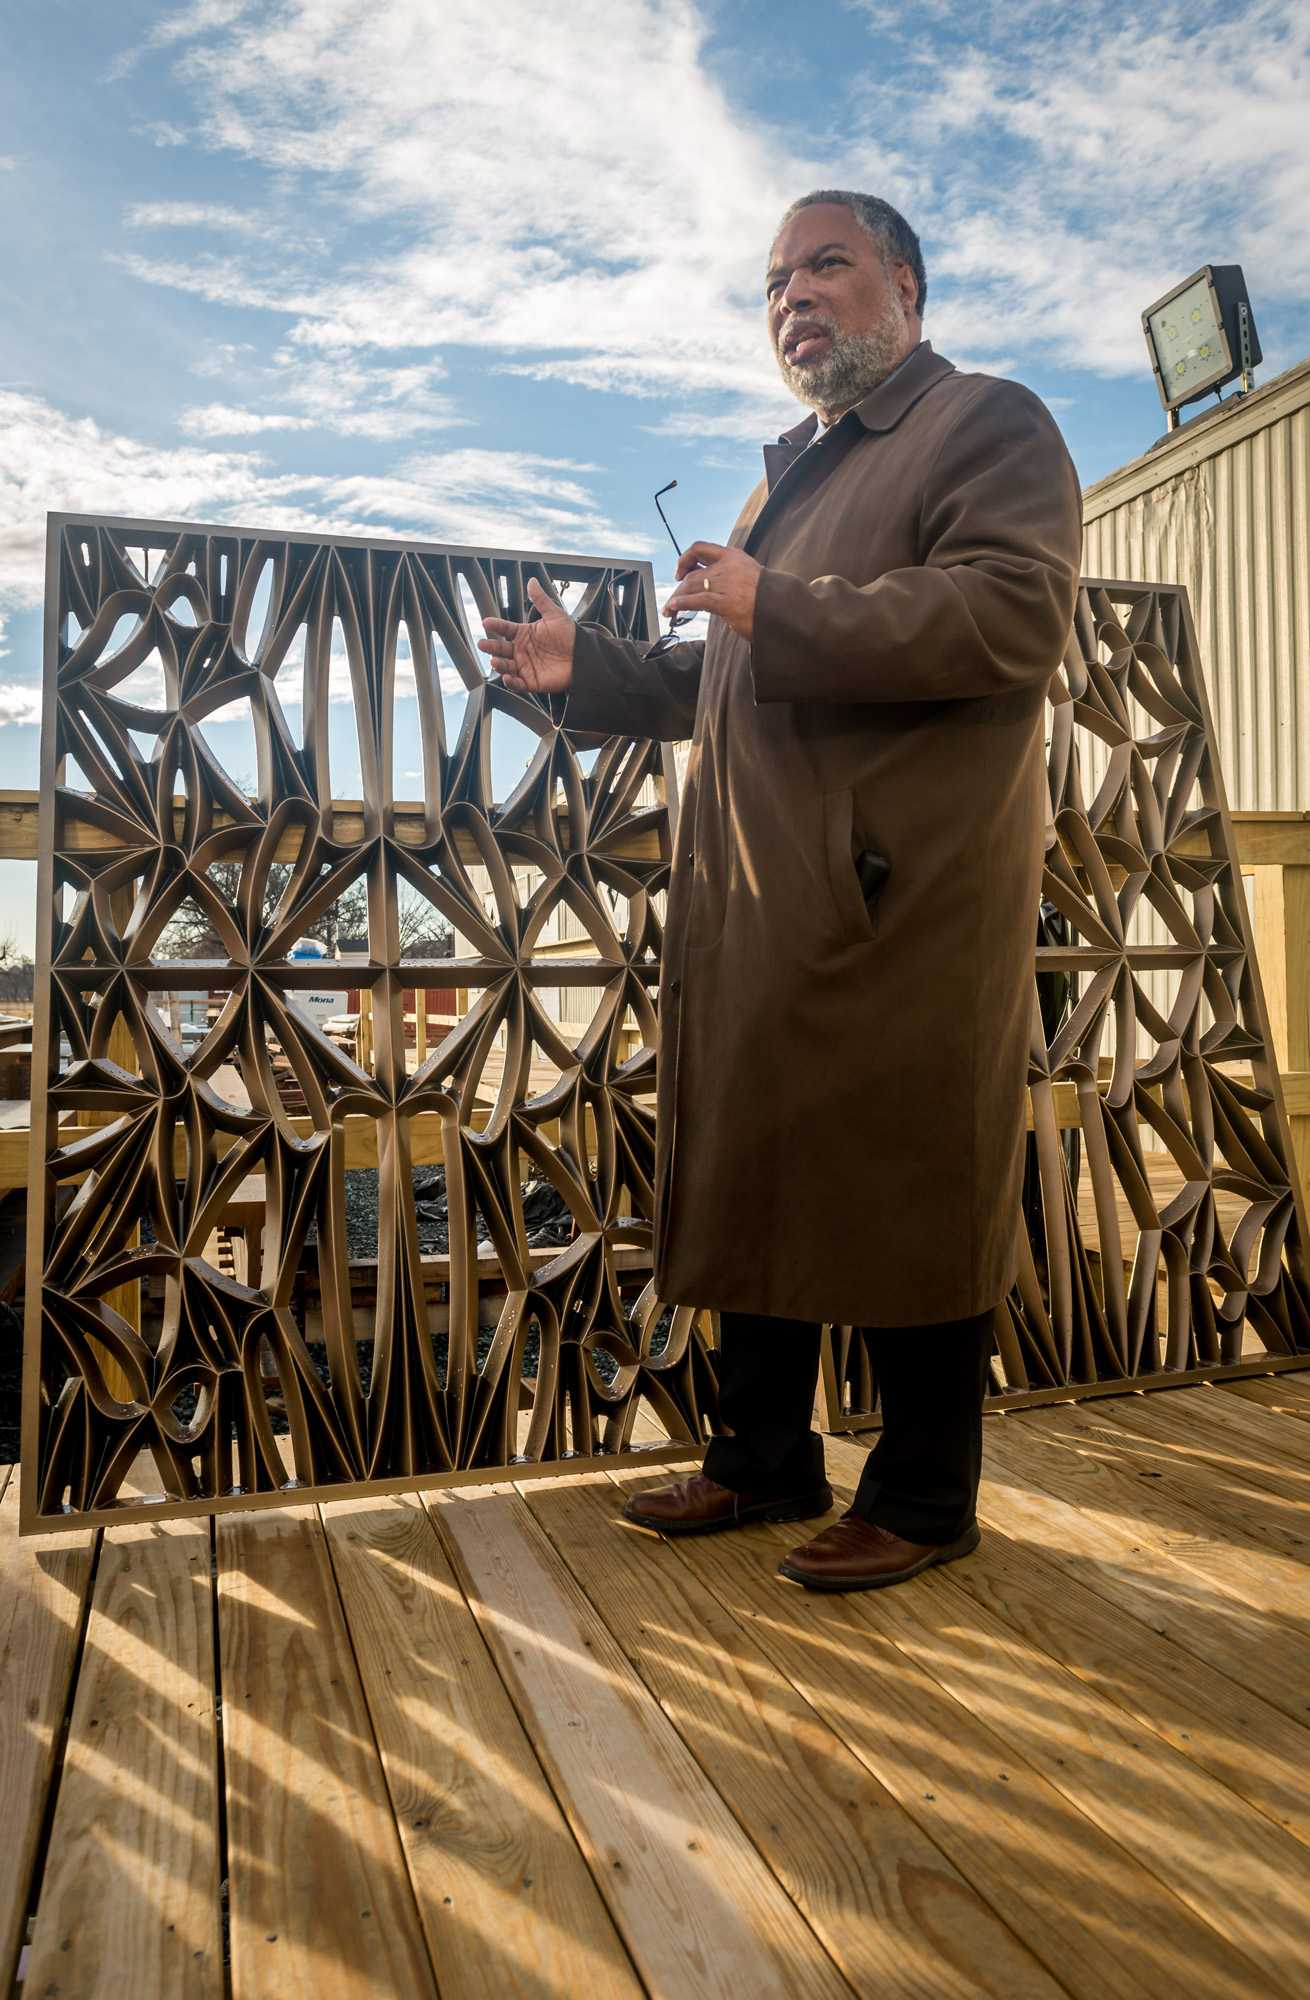 Director of the Smithsonian Institute National Museum of African American History and Culture Lonnie Bunch III talks about the design of the bronze plated aluminum panels which will comprise the bronze and glass-panel façade, known as the Corona, during a tour of the museum construction site at 14th St. NW and Constitution Avenue in Washington, D.C. on Feb. 21, 2014. The Corona is a representation of traditional African architecture using modern materials and will visually define the museum. The Corona will hang from the top of the museum with no intermediate support on the side of building.